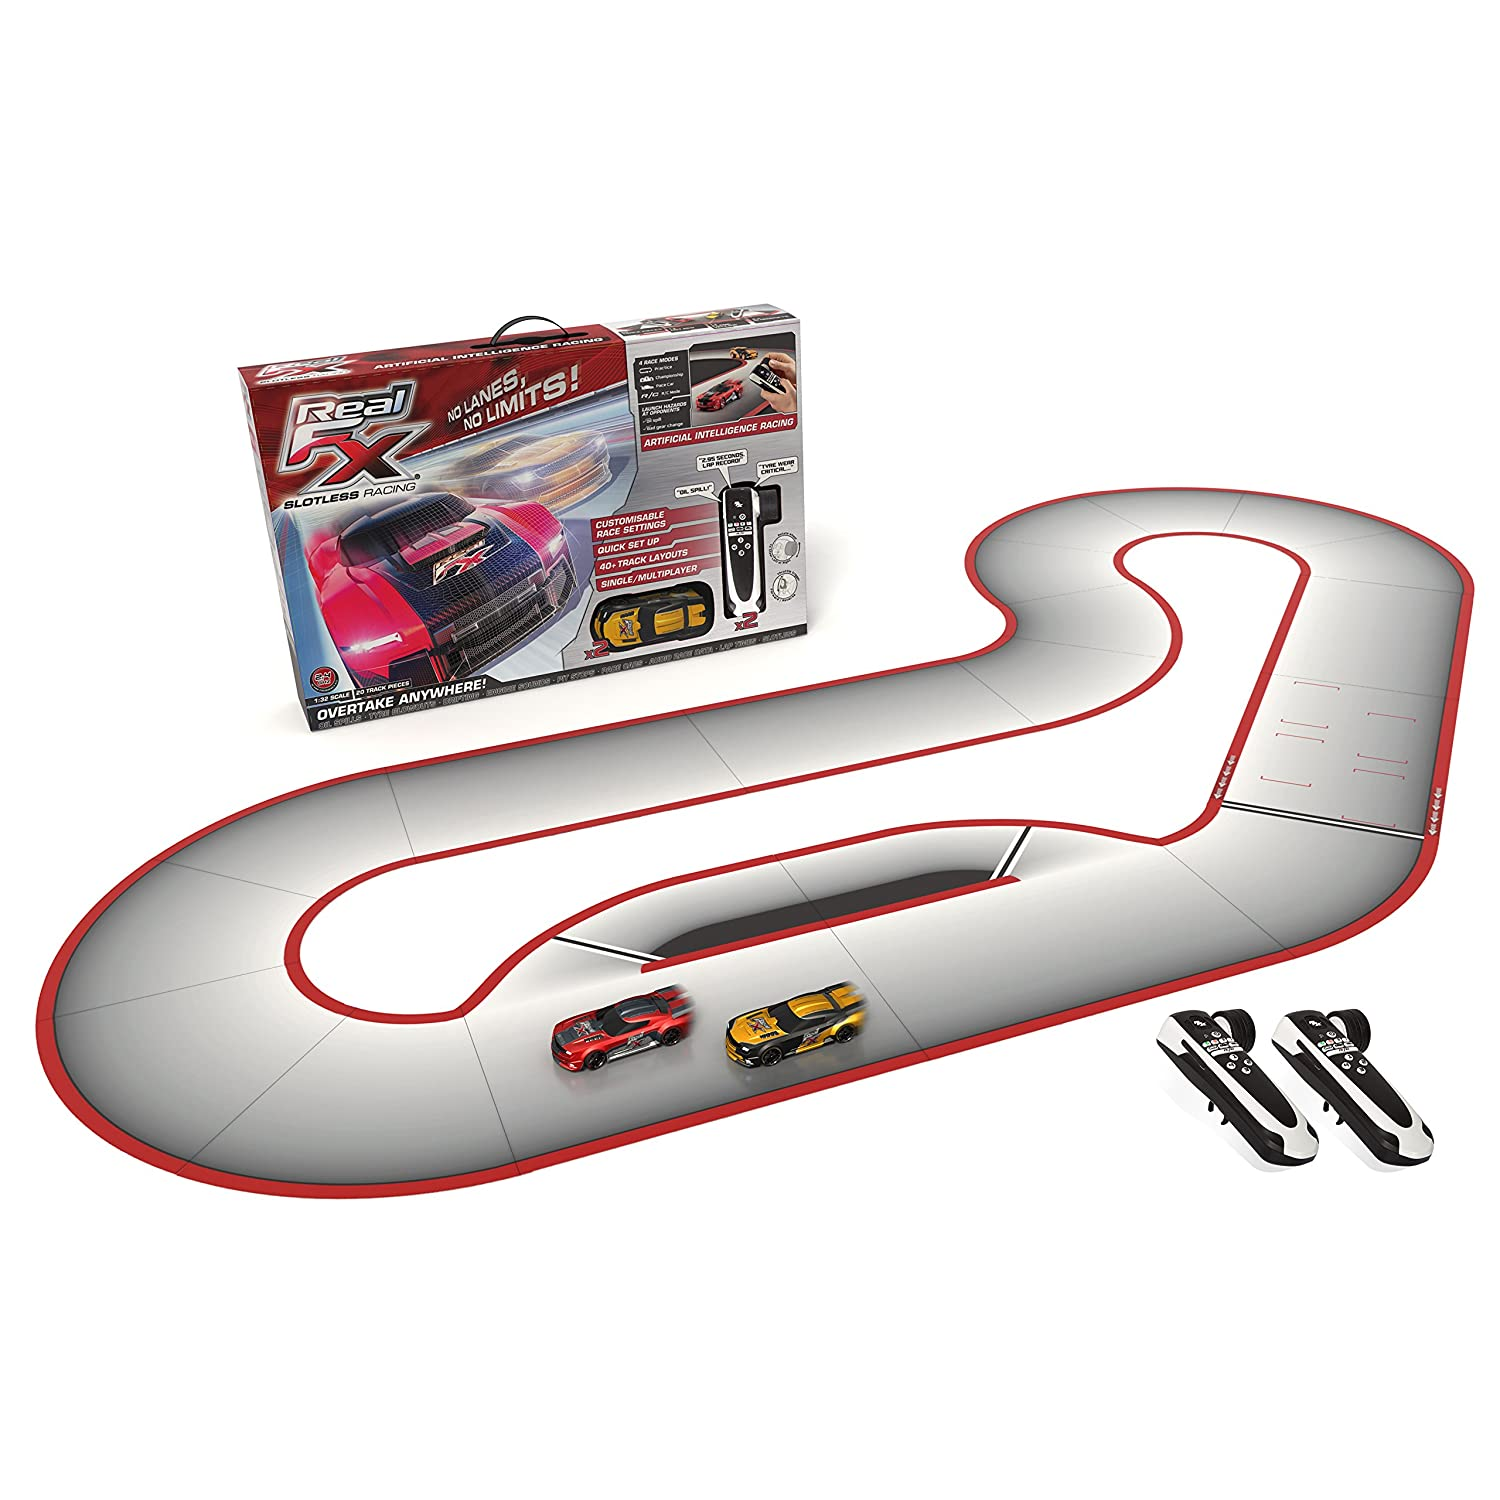 amazoncom real fx racing slotless racetrack system including two rc cars and handsets with artificial intelligence toys games